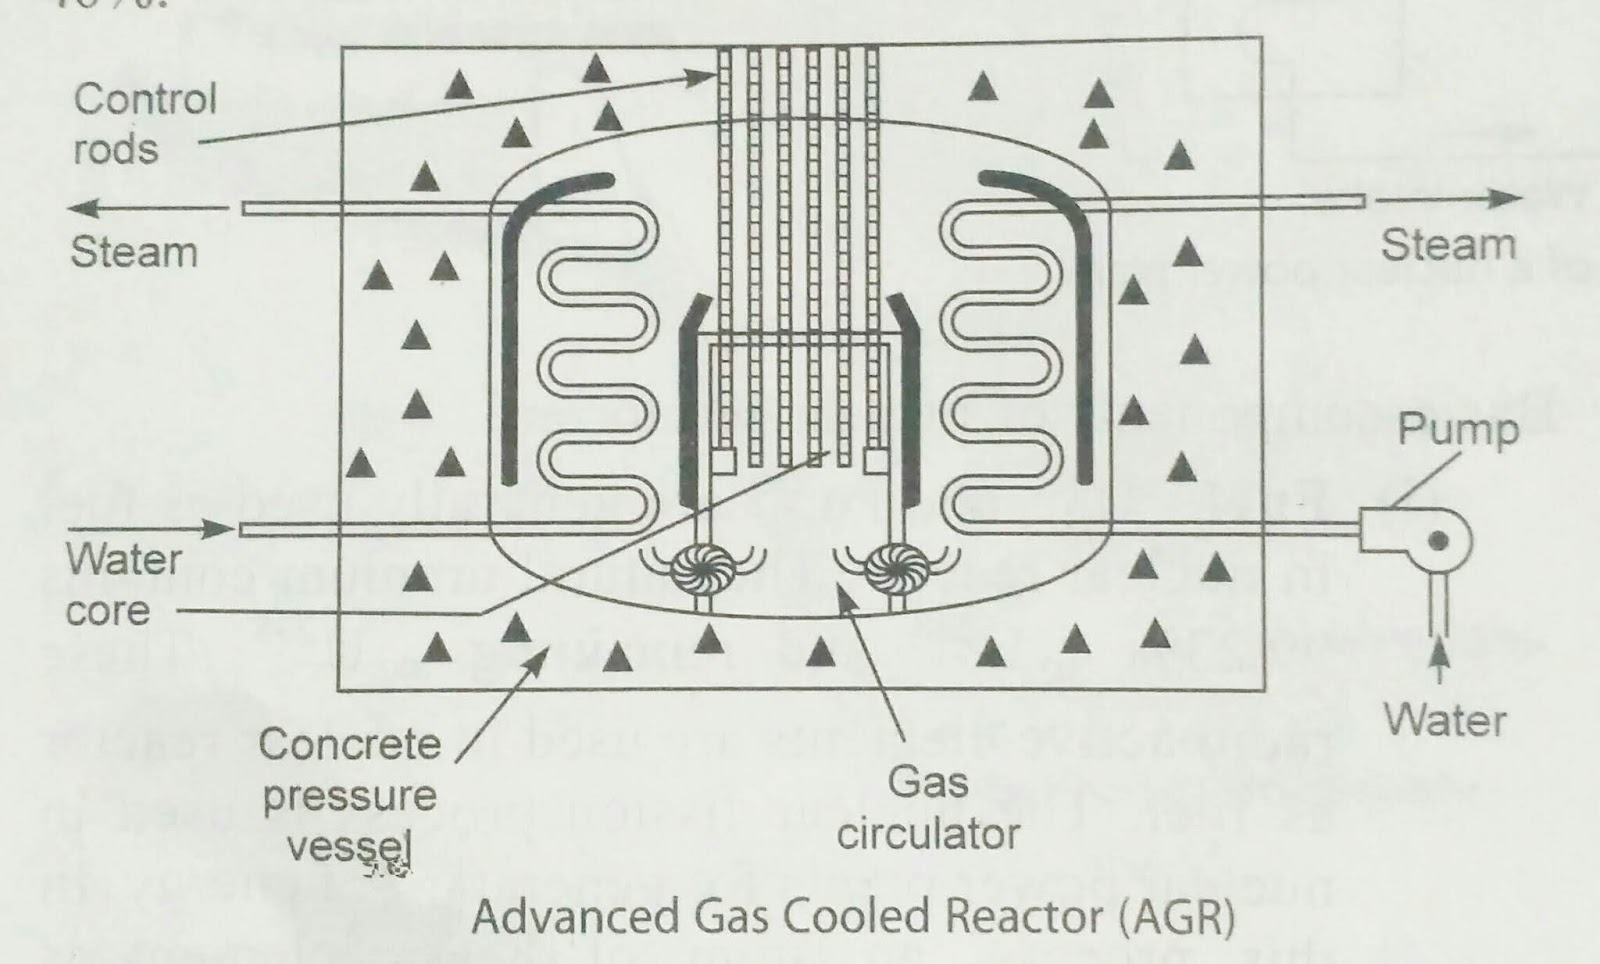 main parts of nuclear power plant